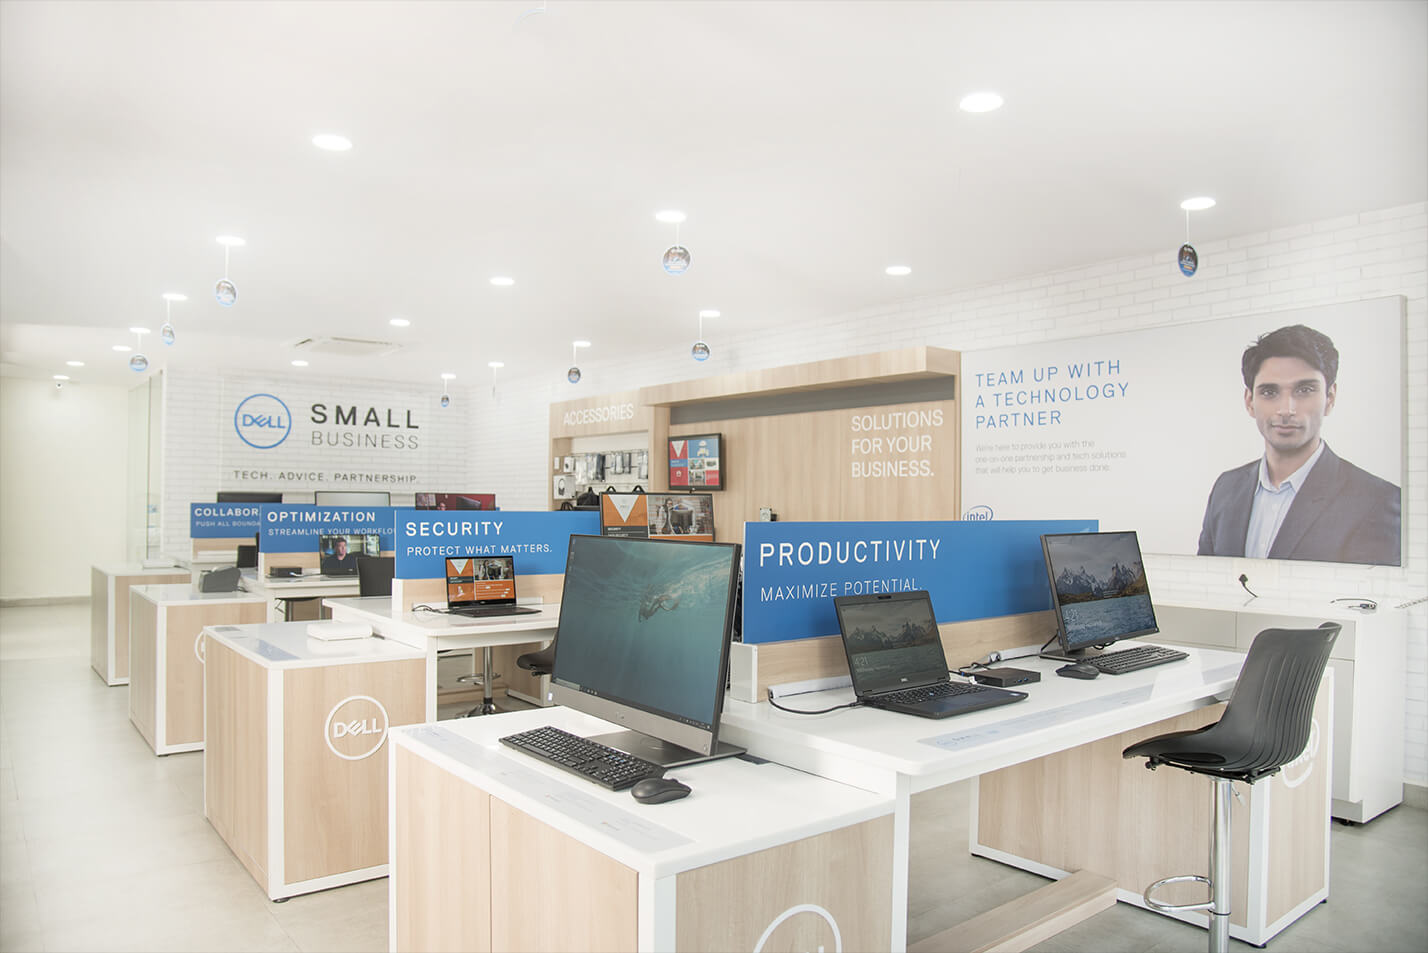 DELL_-_SMALL_BUSINESS_SOLUTIONS_CENTRE_3